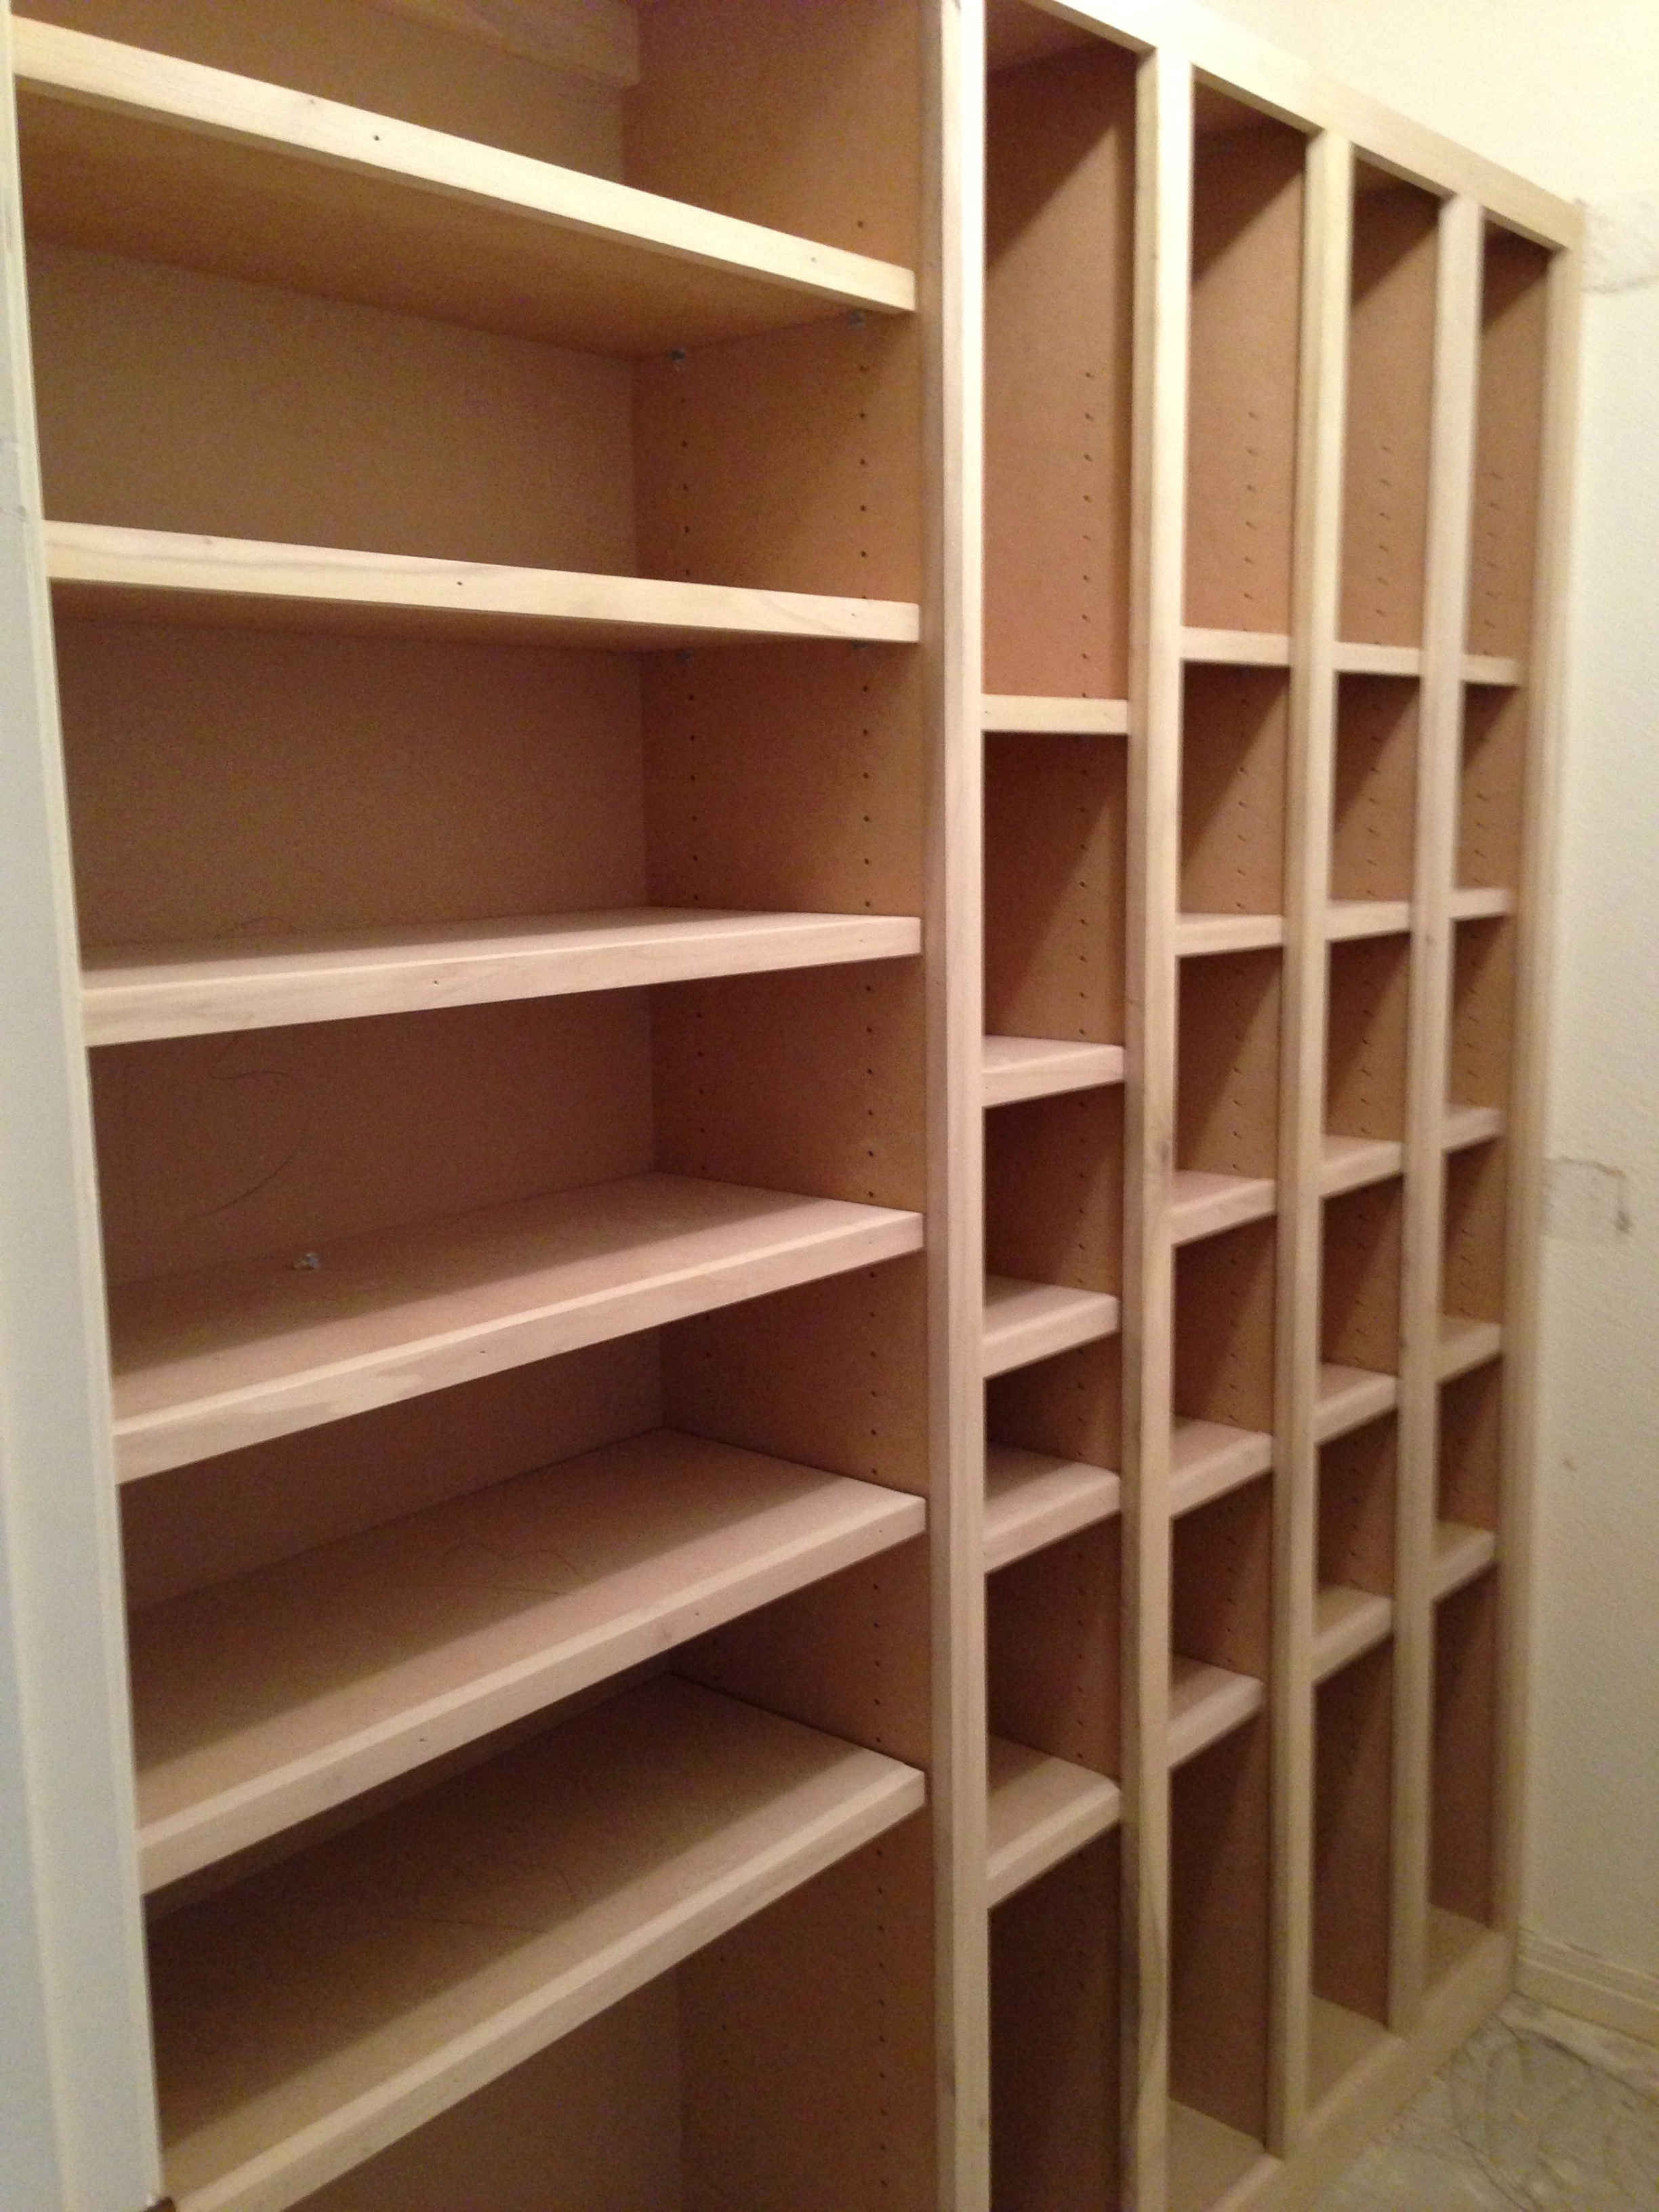 The first half of the Shoe and Boot Closet has been placed. Specialized hanging for the Client's scarf collection and bench are yet to be installed.